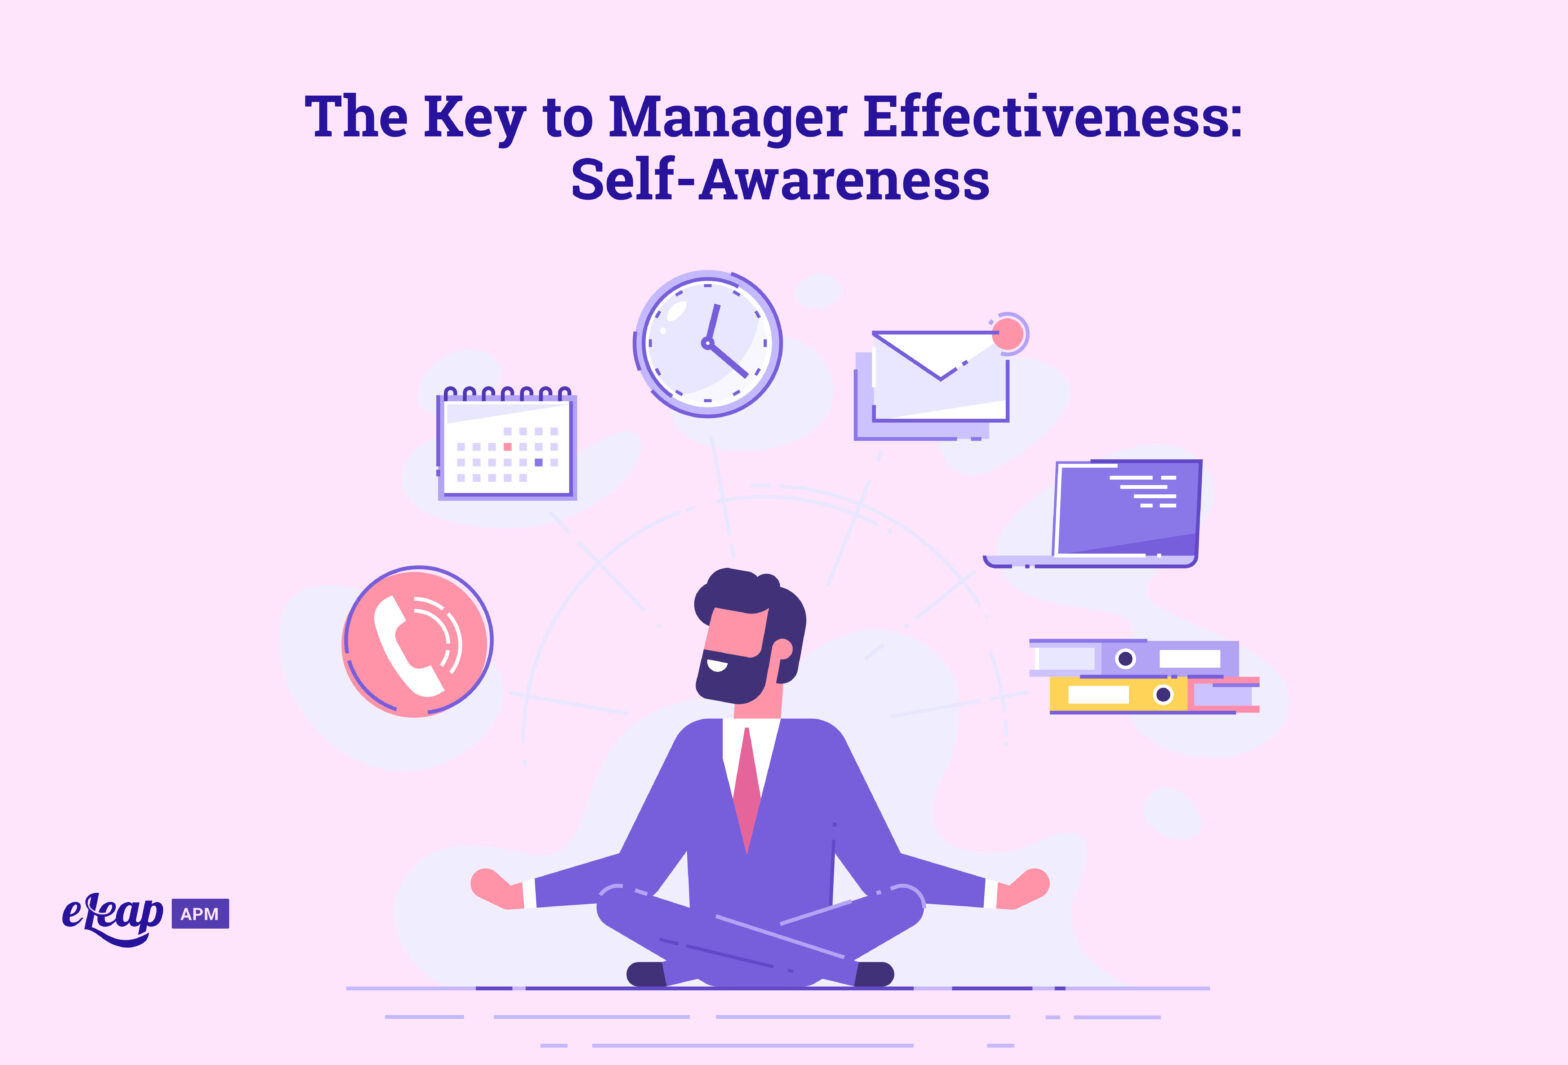 The Key to Manager Effectiveness: Self-Awareness